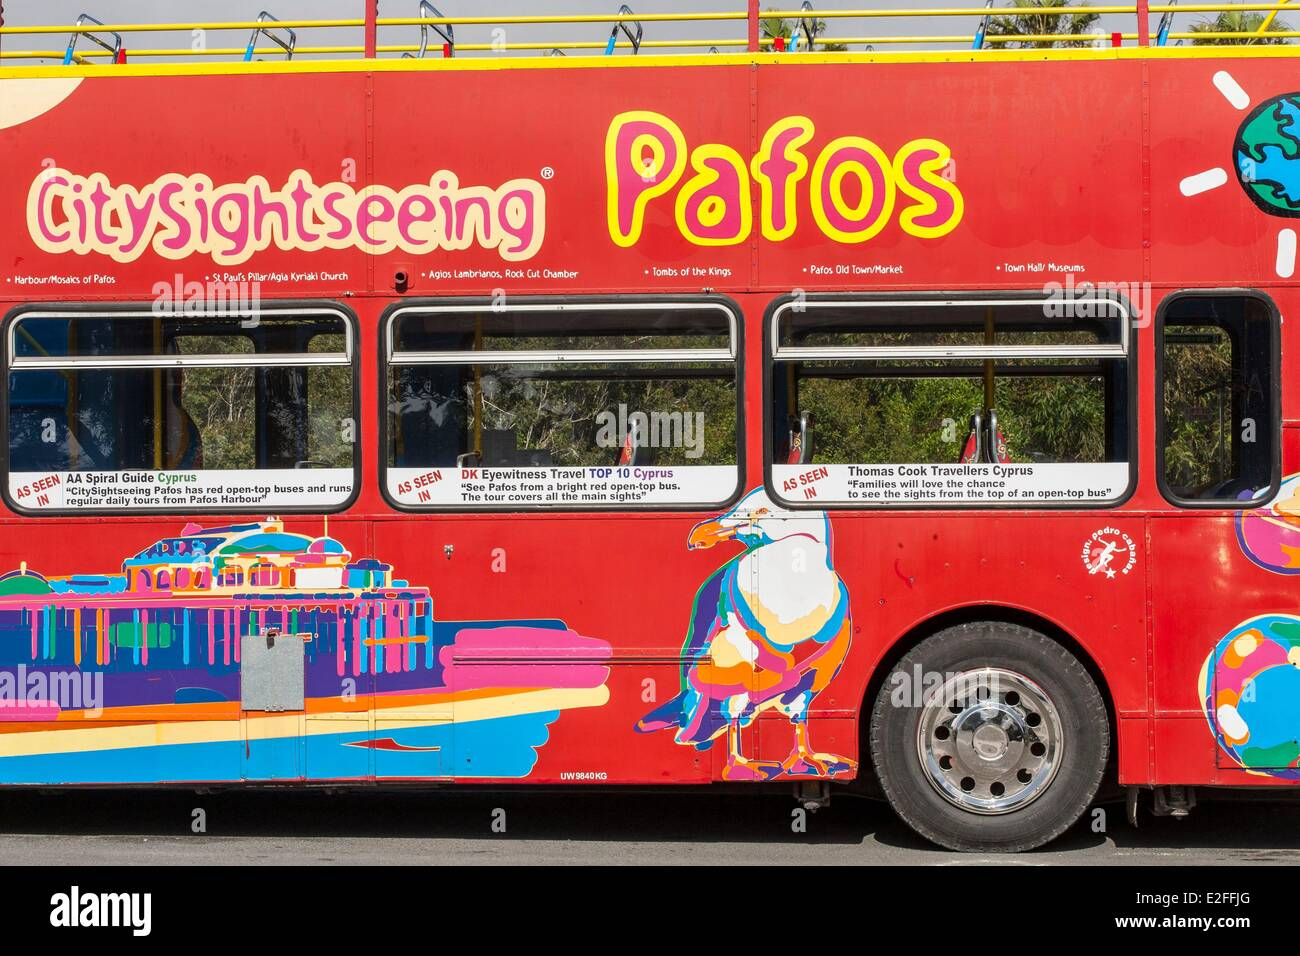 Cyprus, Paphos, city sightseeing bus tour - Stock Image